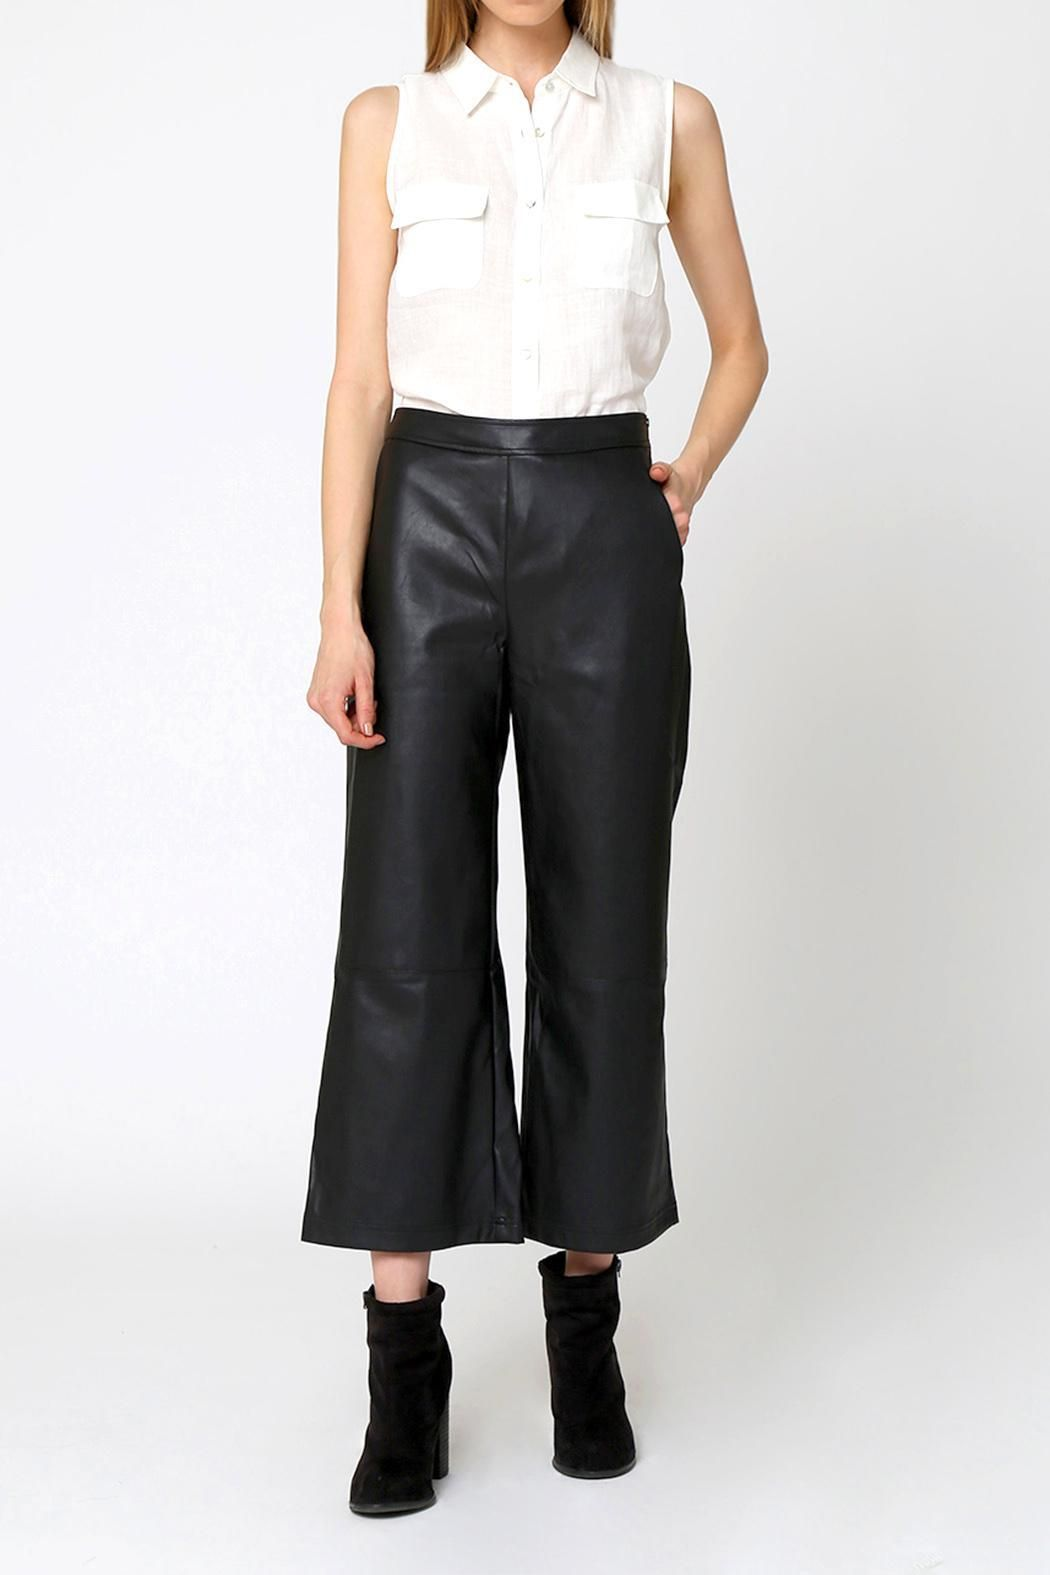 Vegan leather, black high waisted pants with a wide leg and cropped length.    Vegan Leather Wide-Leg Pants by Movint. Clothing - Bottoms - Pants & Leggings - Flare & Wide Leg Clothing - Bottoms - Pants & Leggings - Black Clothing - Bottoms - Pants & Leggings - Leather Los Angeles, California